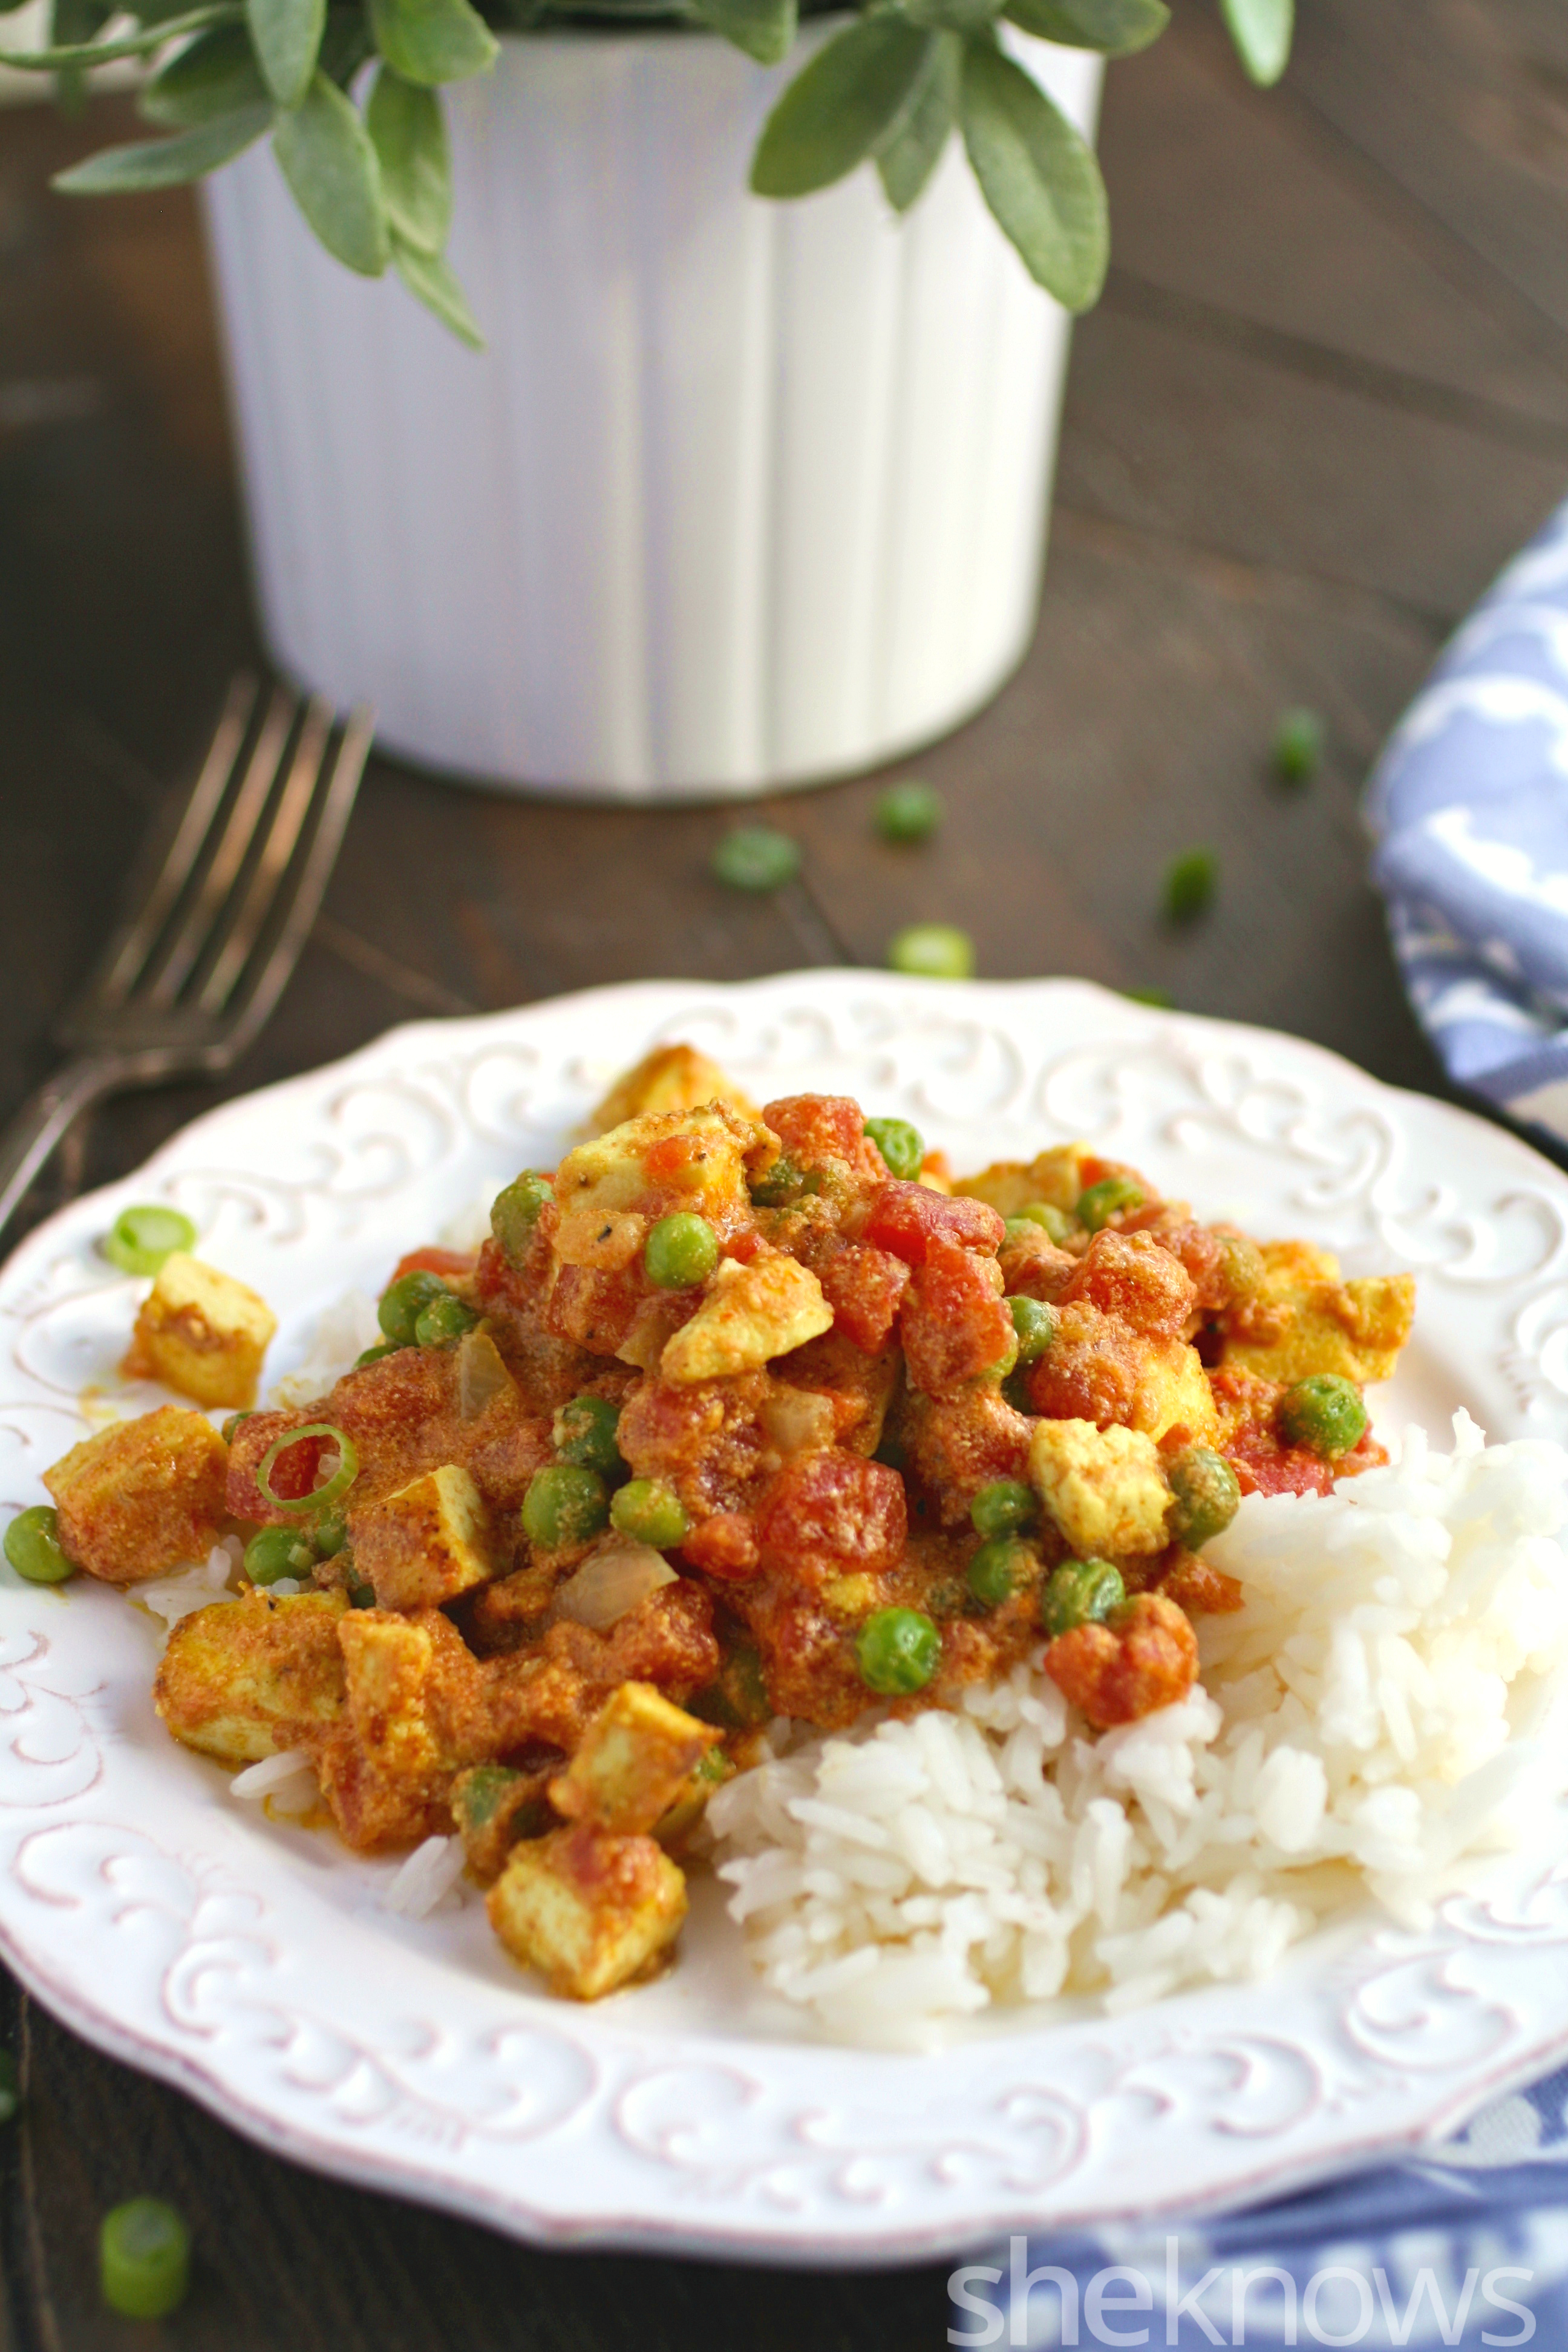 This colorful and flavoful Meatless Monday tofu tikka masala is an Indian-inspired dish you'll love!